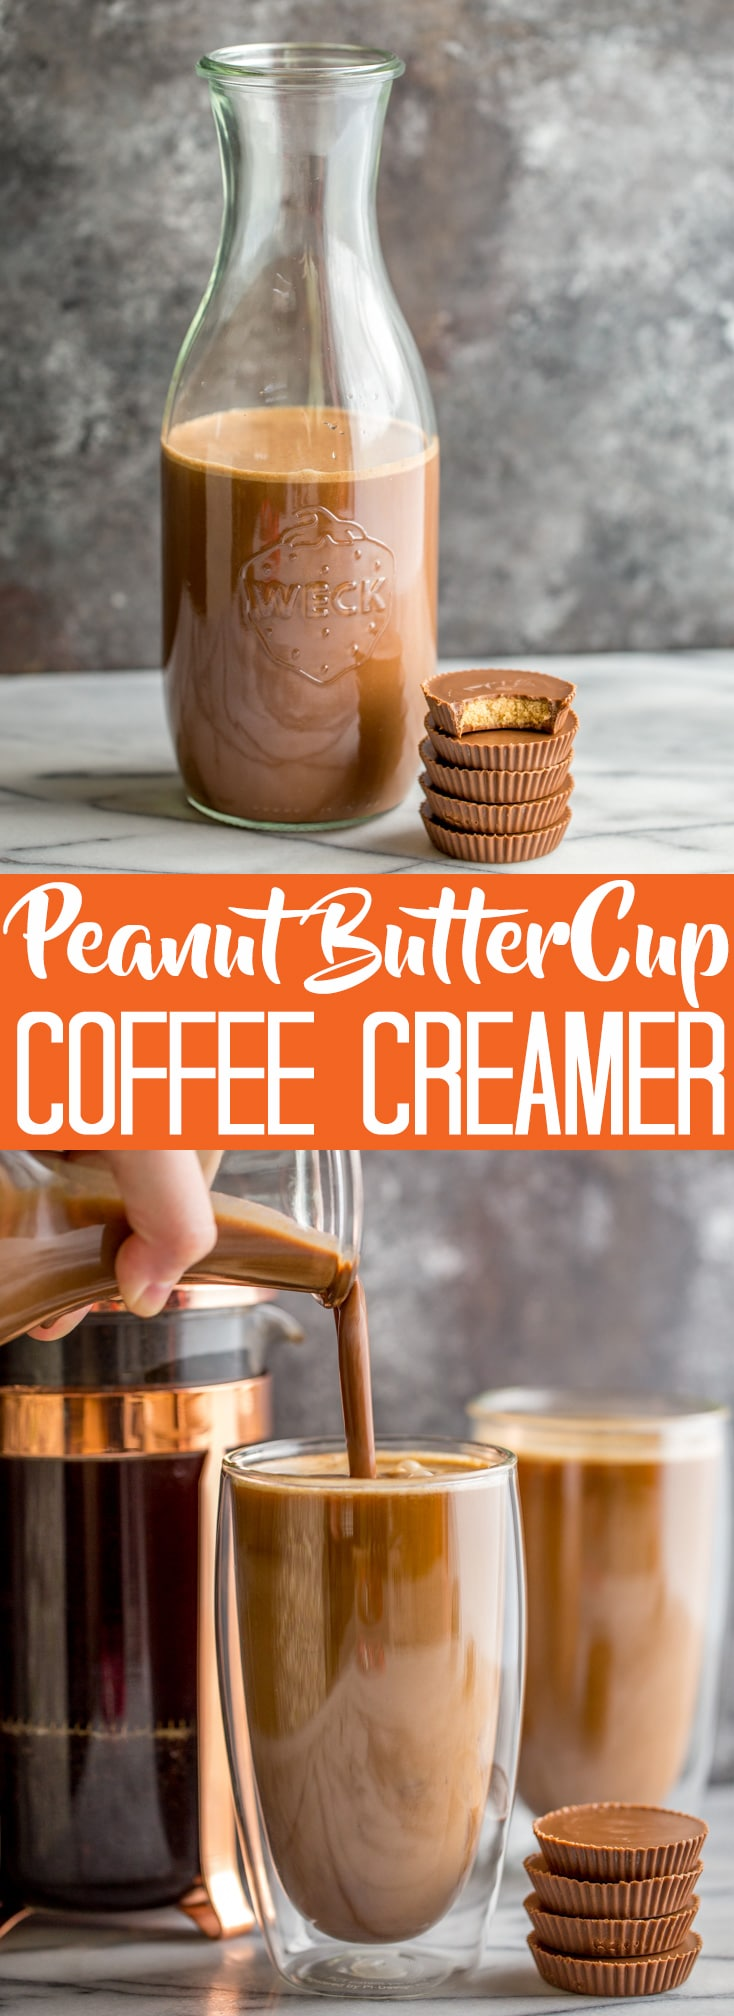 This Homemade Peanut Butter Cup Coffee Creamer will liven up your morning coffee! Homemade Creamer | Coffee Creamer | Peanut Butter Creamer | Peanut Butter Cup Creamer